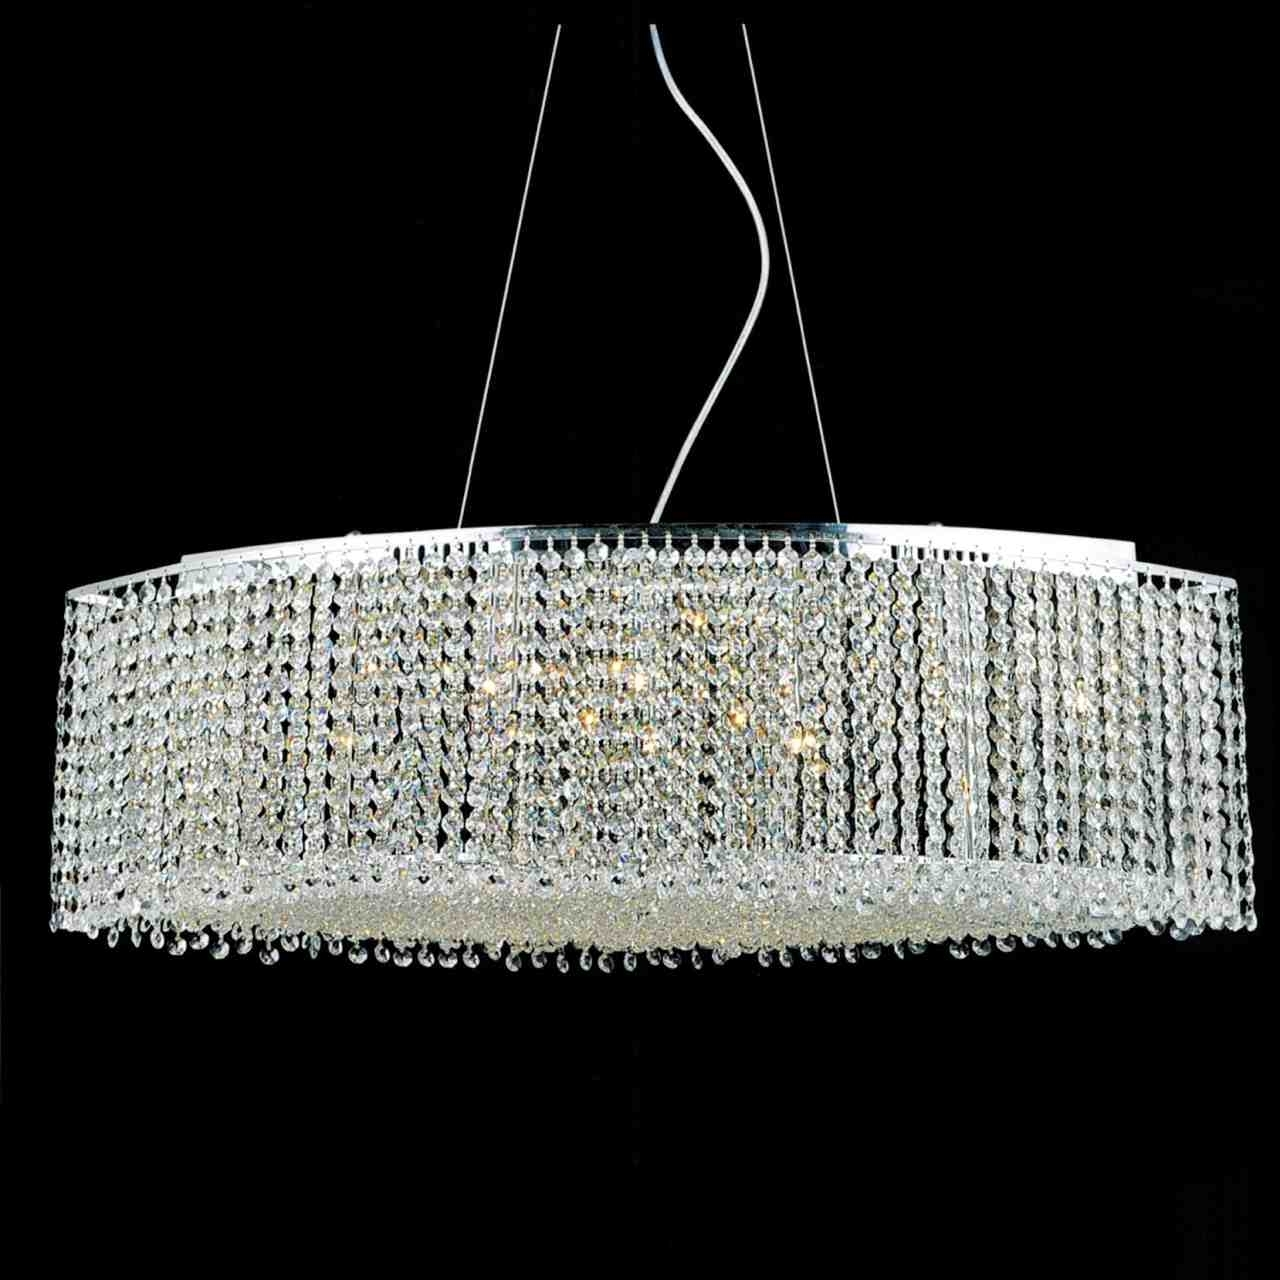 Purple Crystal Chandelier Lighting Pertaining To Recent Brizzo Lighting Stores (View 3 of 20)